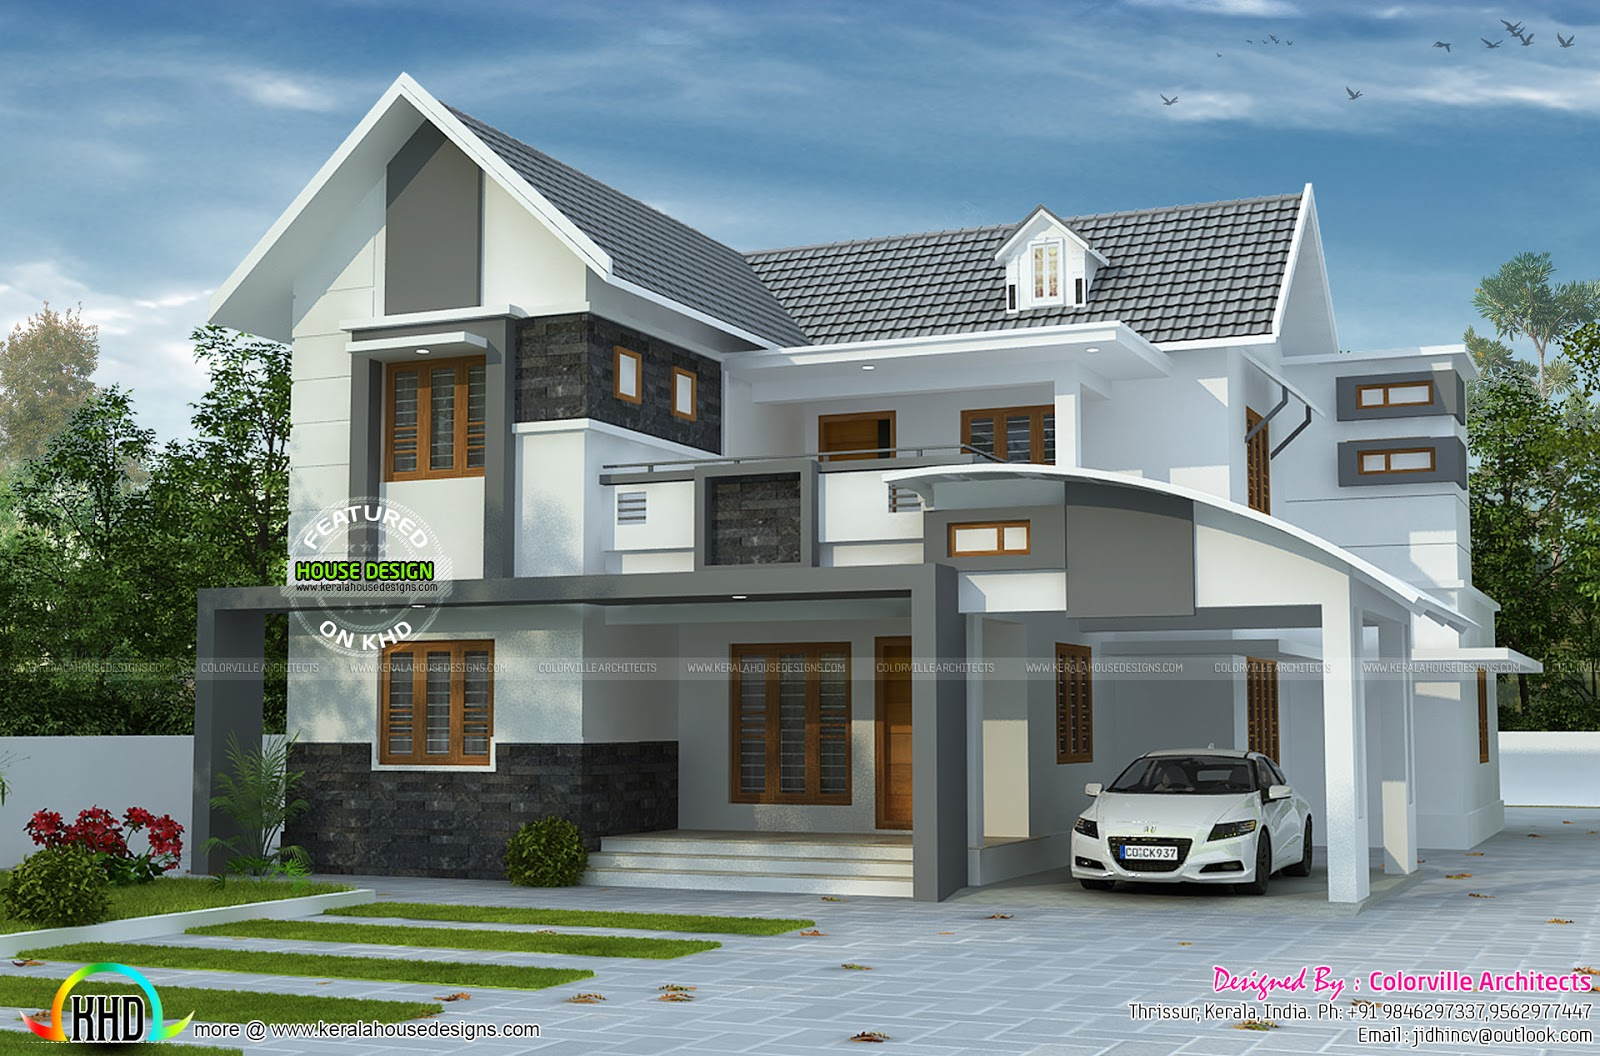 House plan by colorville architects kerala home design House plans india with two bedrooms